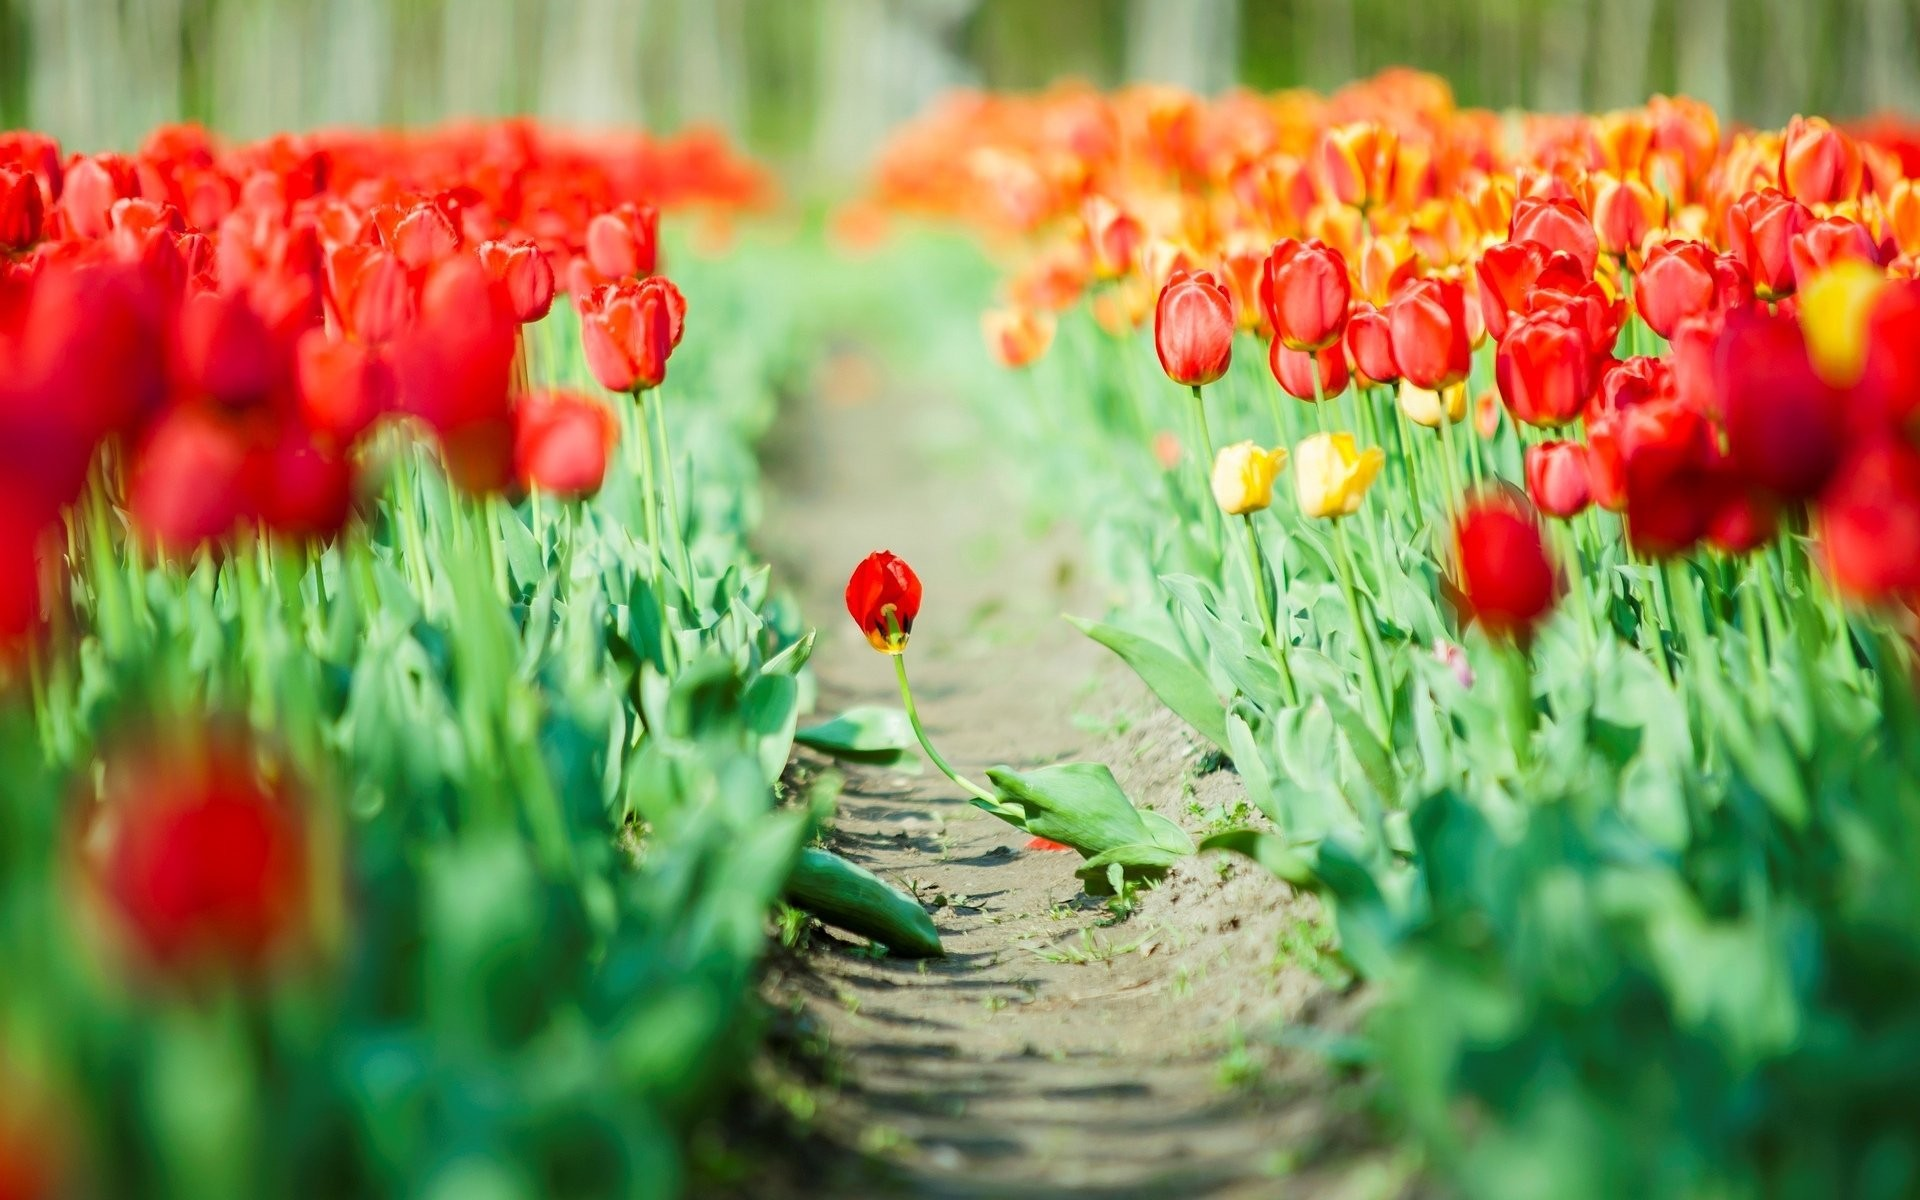 1920x1200 flower tulips red green leaves flowers background wallpaper widescreen full  screen widescreen hd wallpapers background wallpaper